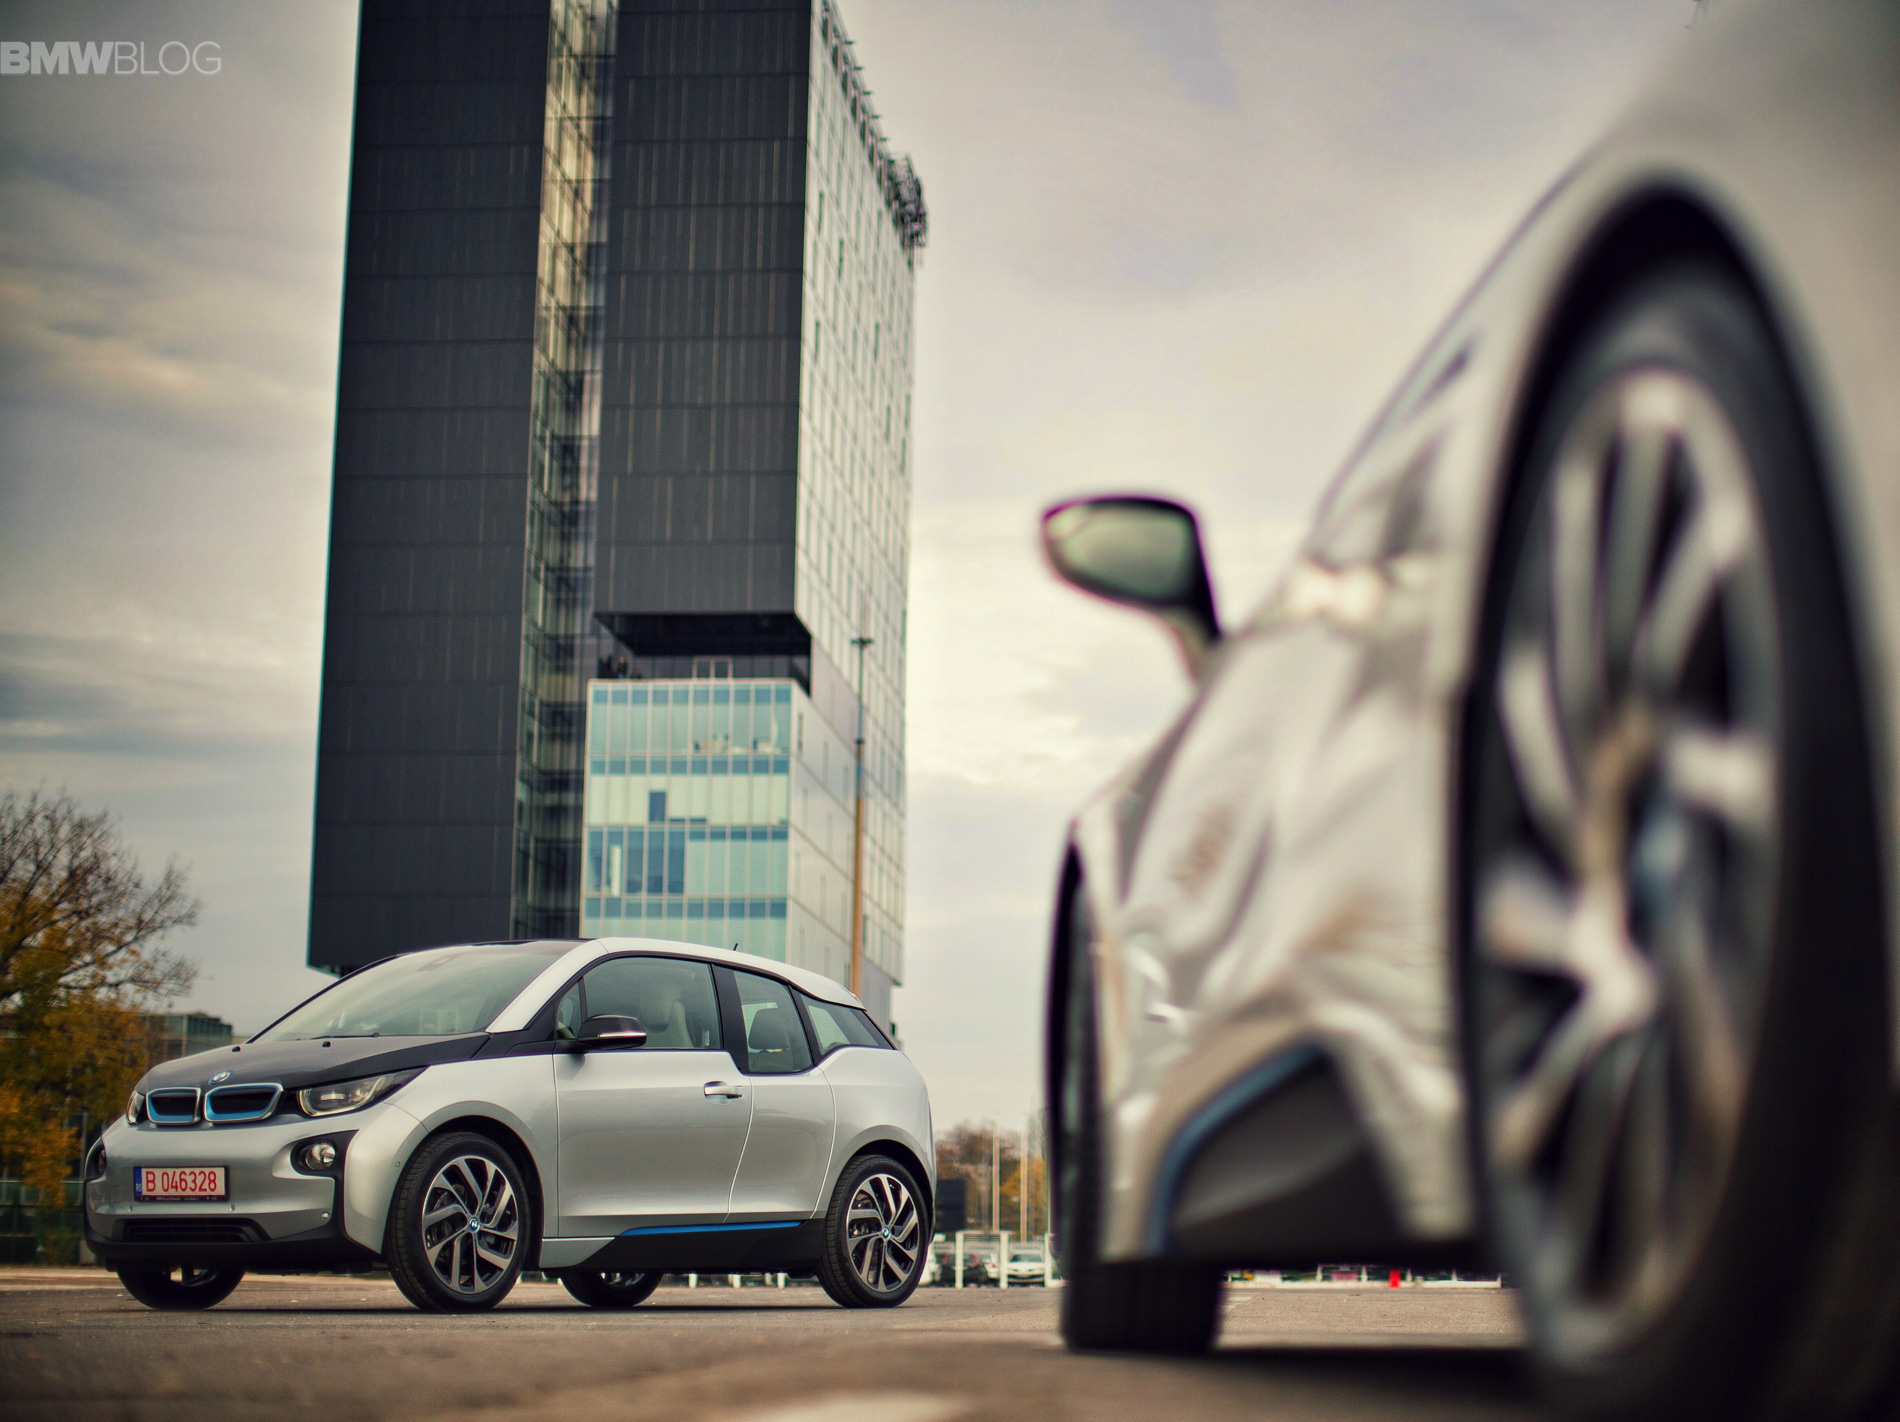 BMW i3 i8 photoshoot bucharest images 6